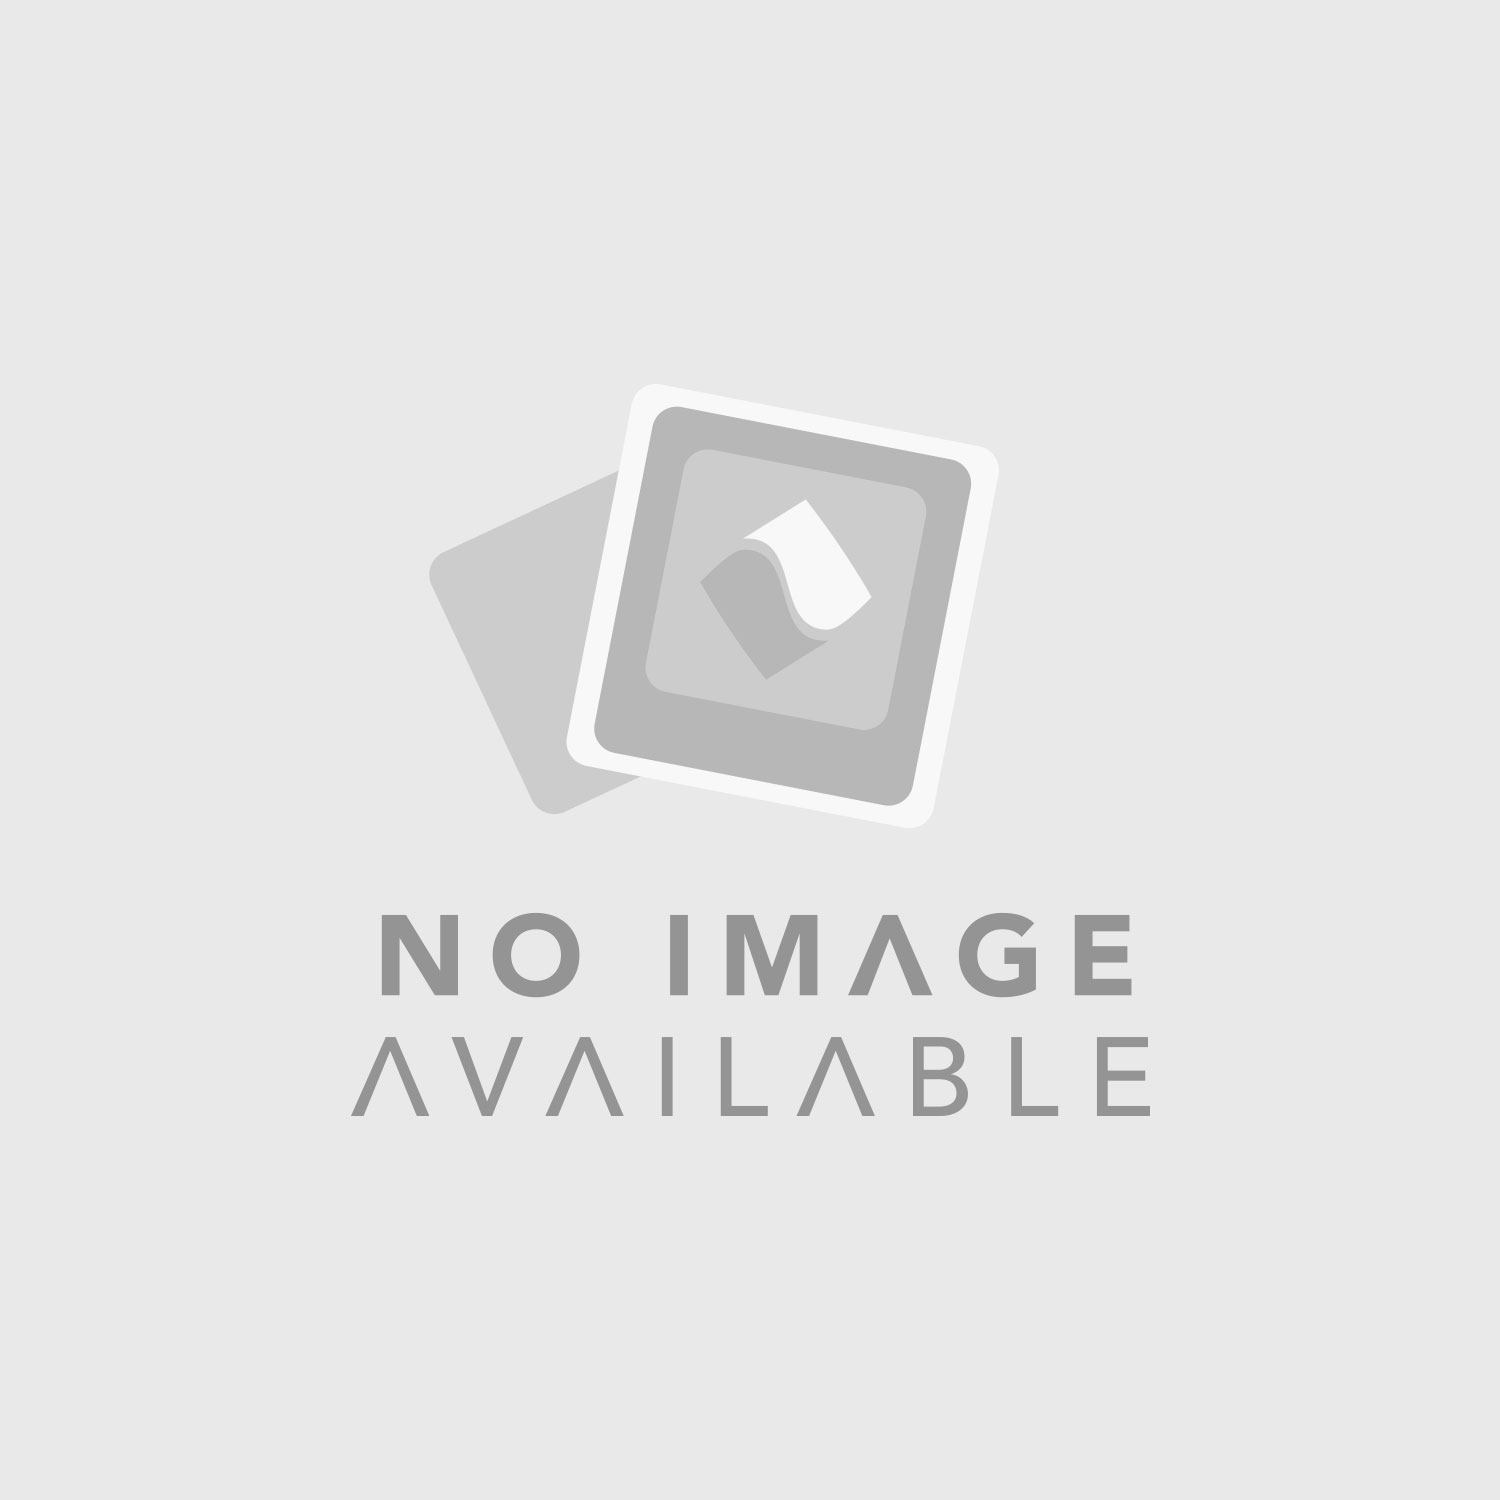 ART PowerMIX III 3-Channel Personal Stereo Mixer